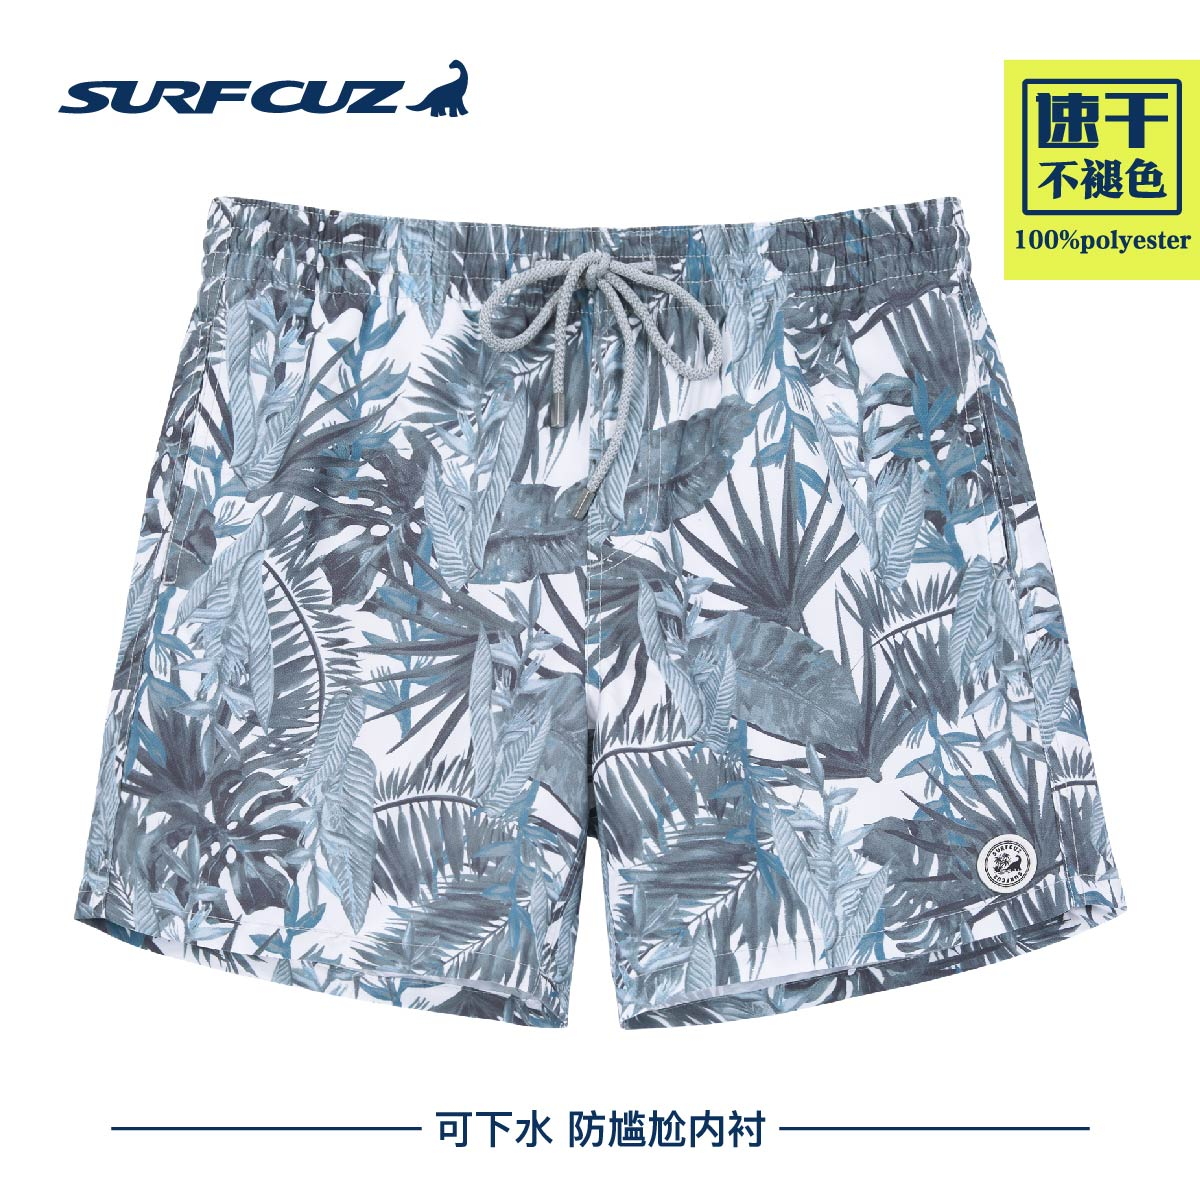 surfcuz men's quick-drying beach shorts seaside vacation loose lined swimming trunks men's hot spring shorts men's swimwear